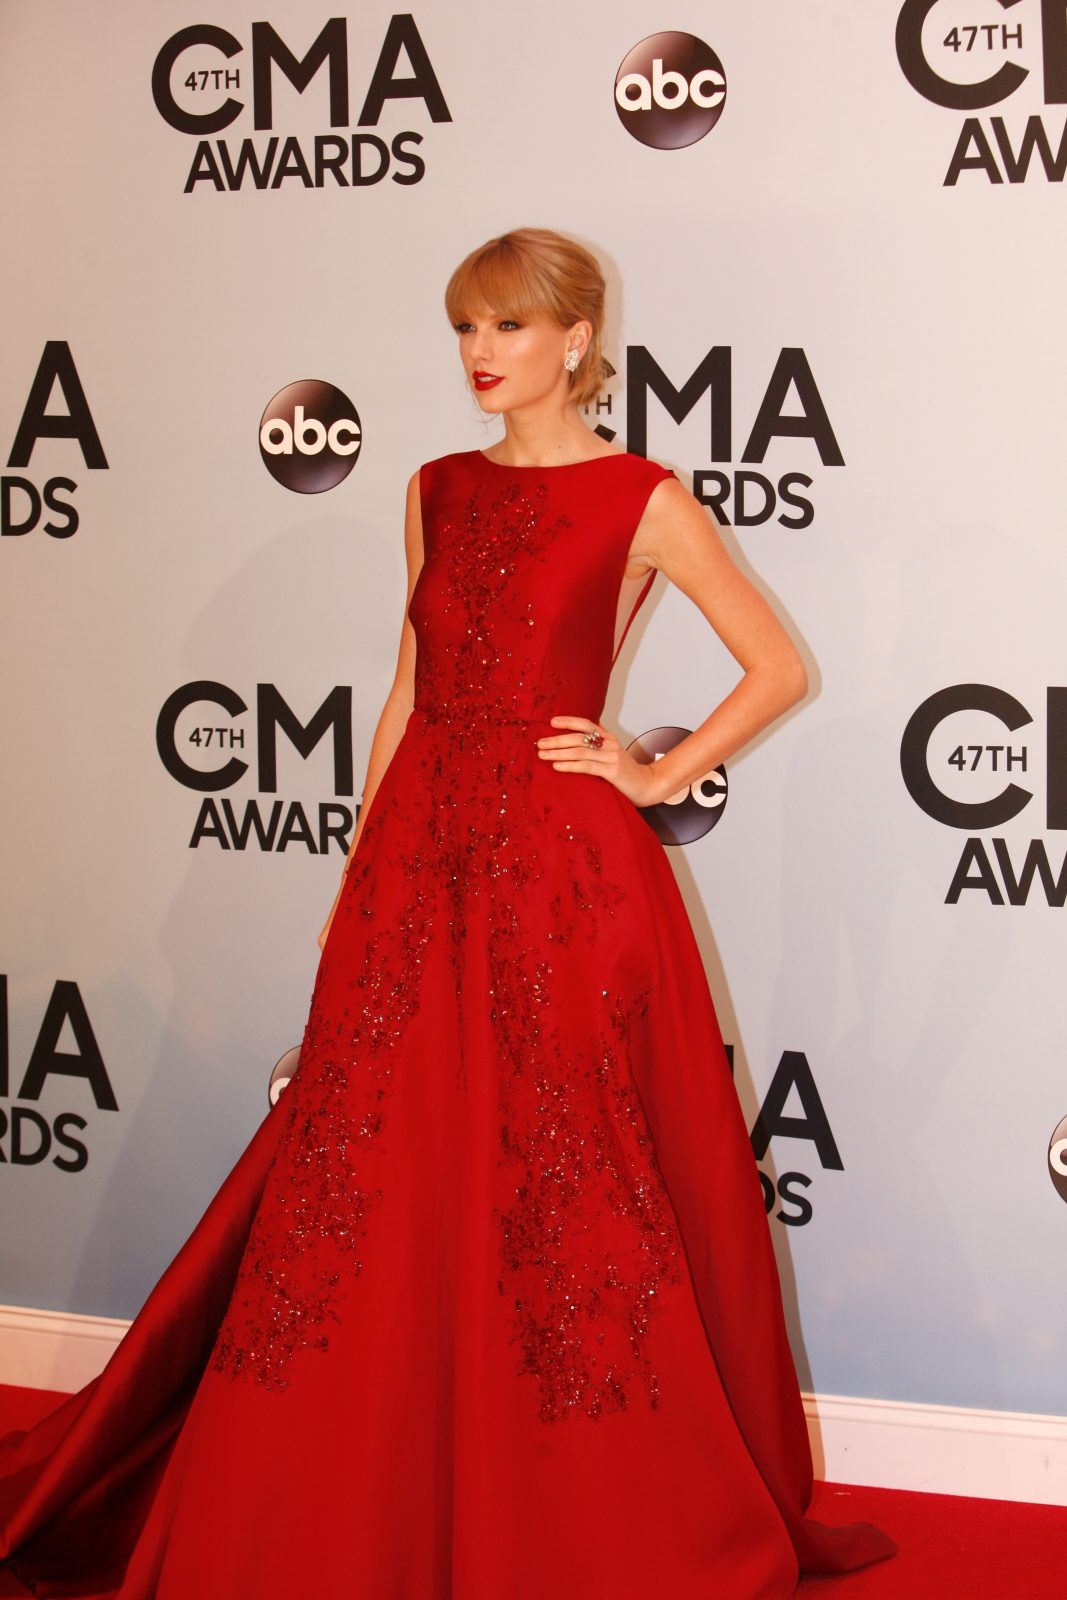 Taylor Swifts Style Pics — Evolution Through The Years